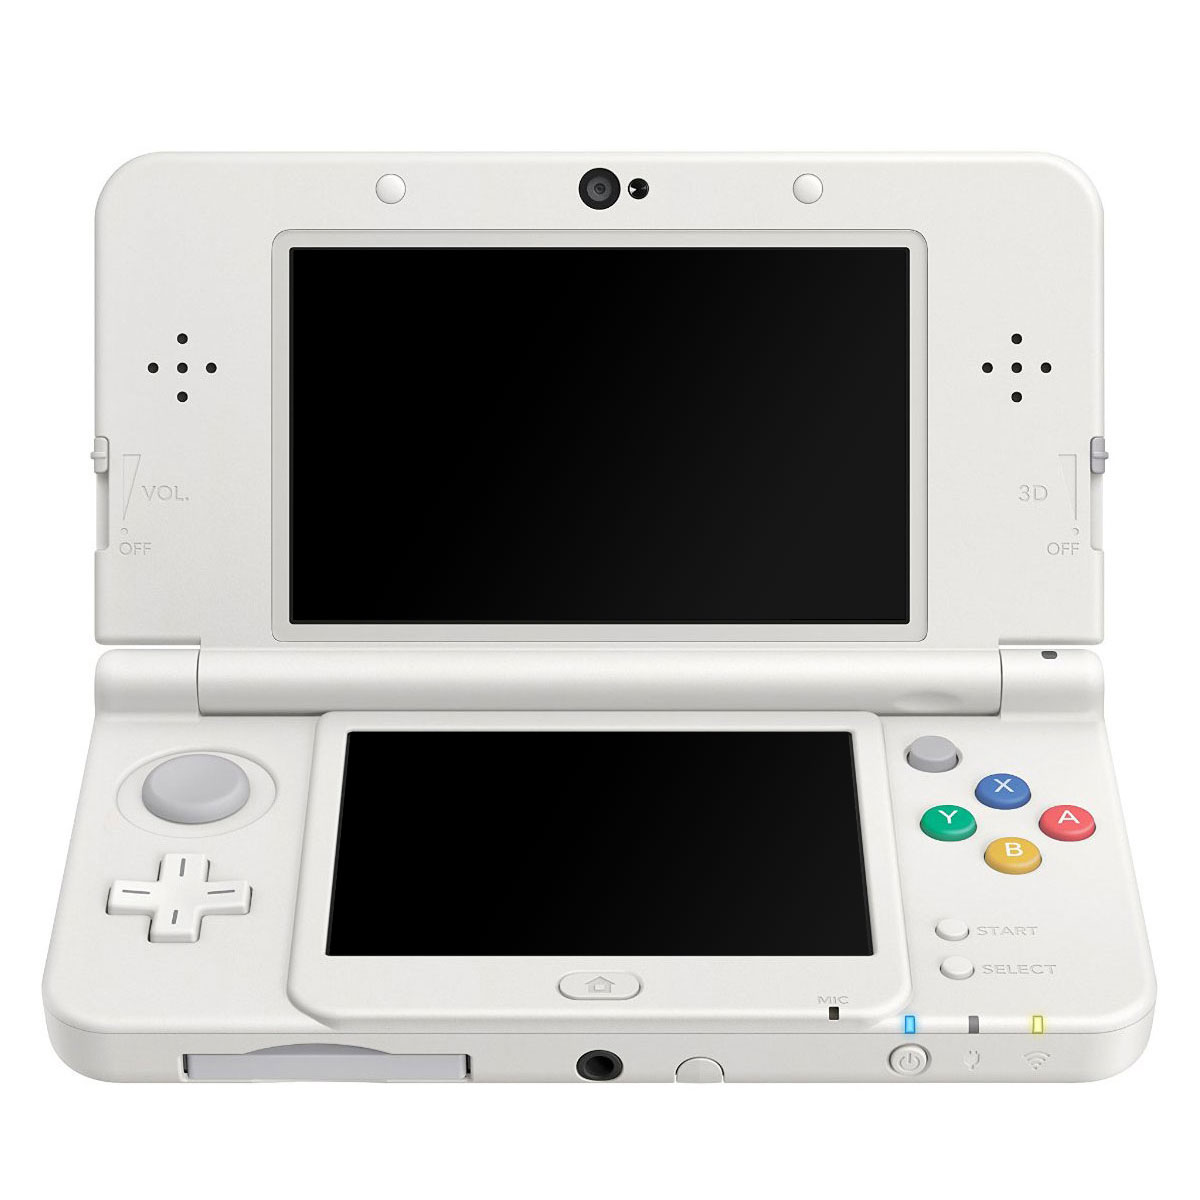 nintendo new 3ds blanche console nintendo 3ds nintendo. Black Bedroom Furniture Sets. Home Design Ideas